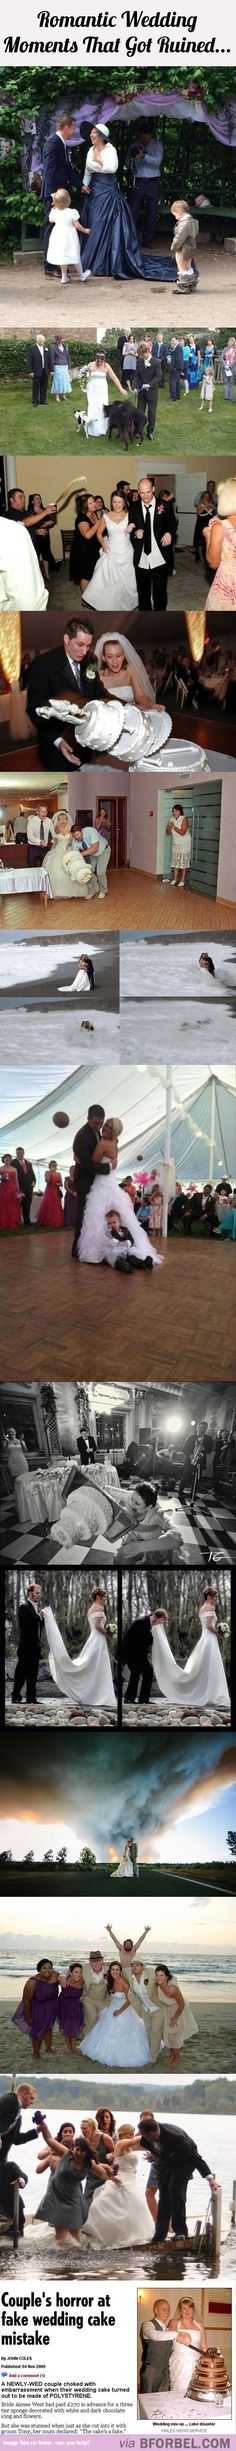 13 Romantic Wedding Moments That Got Ruined…